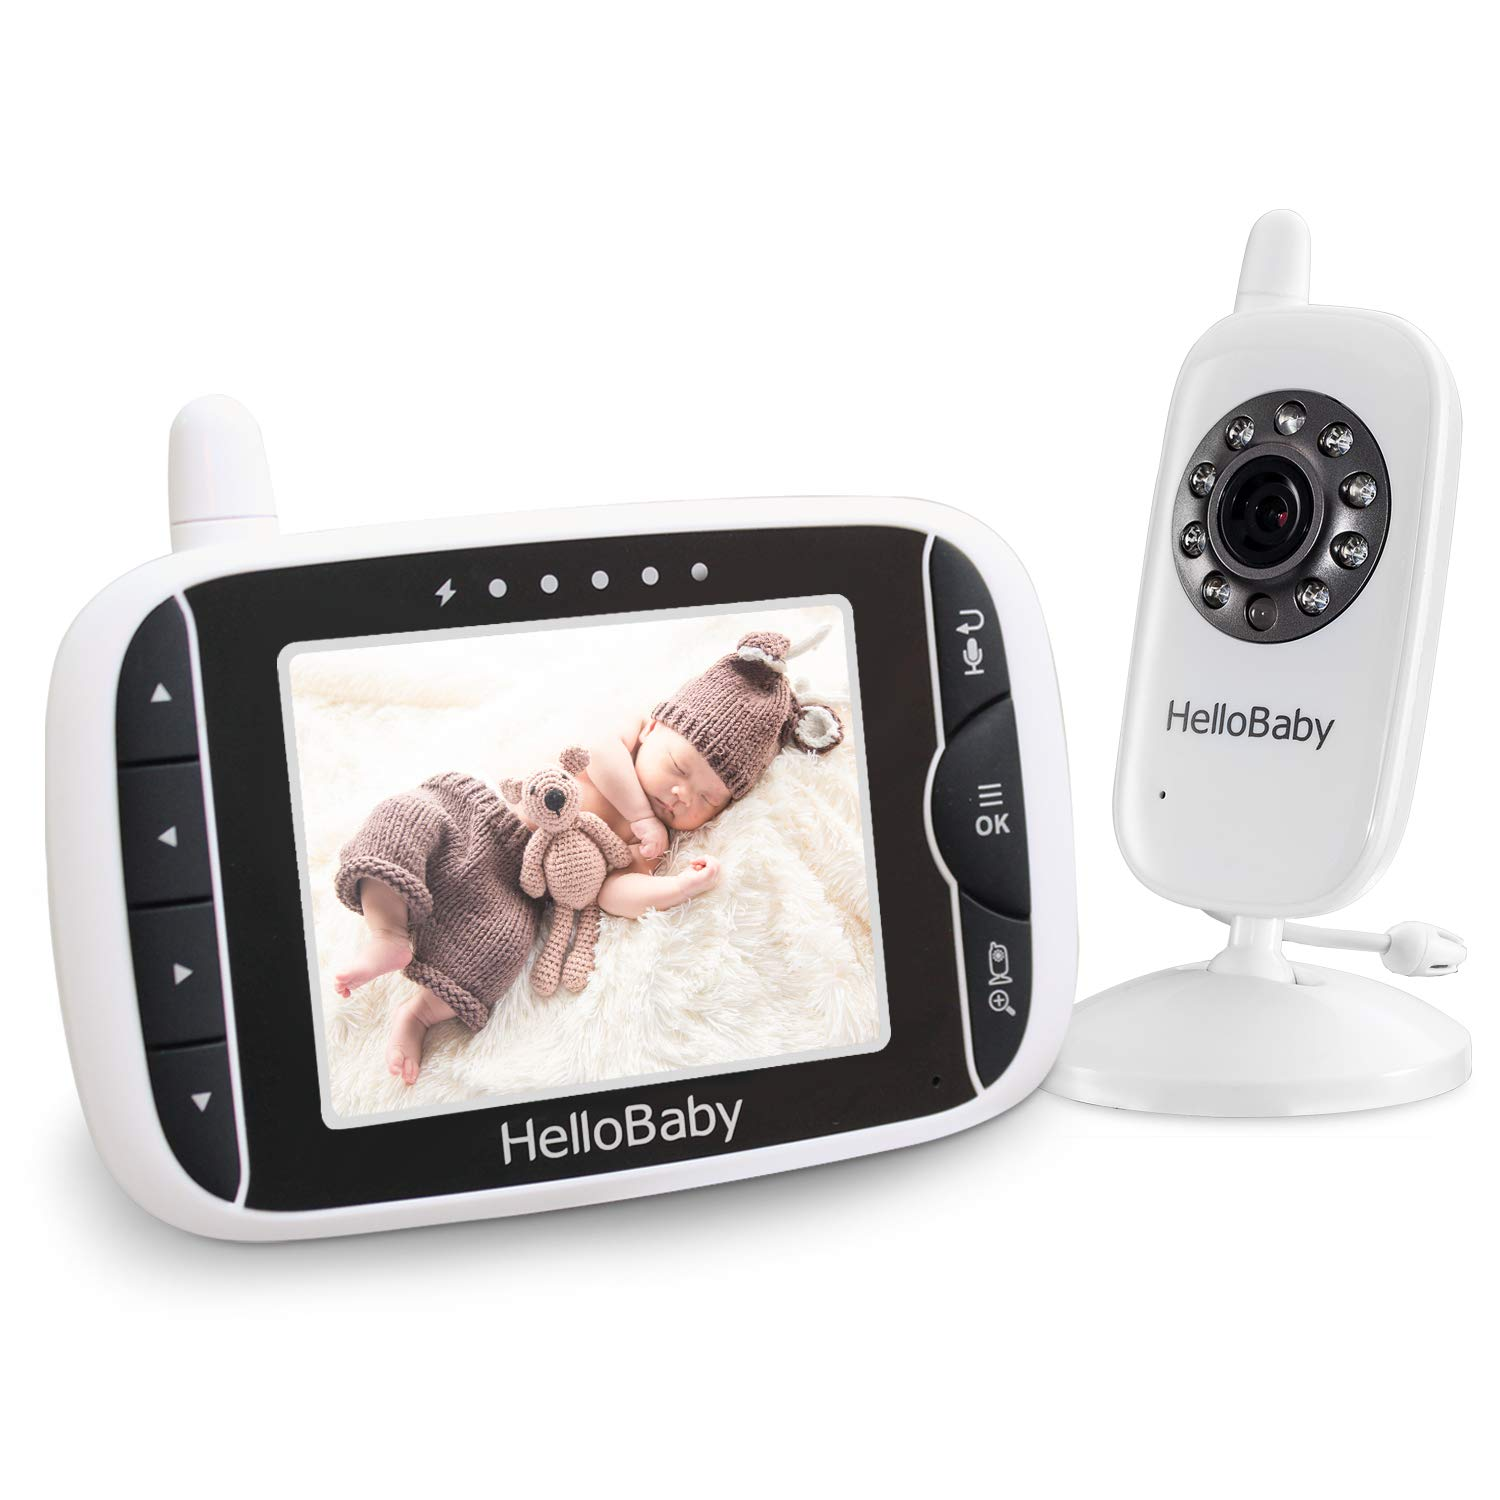 HelloBaby Video Baby Monitor with Night Vision & Temperature Sensor, Two Way Talkback System (HB24)